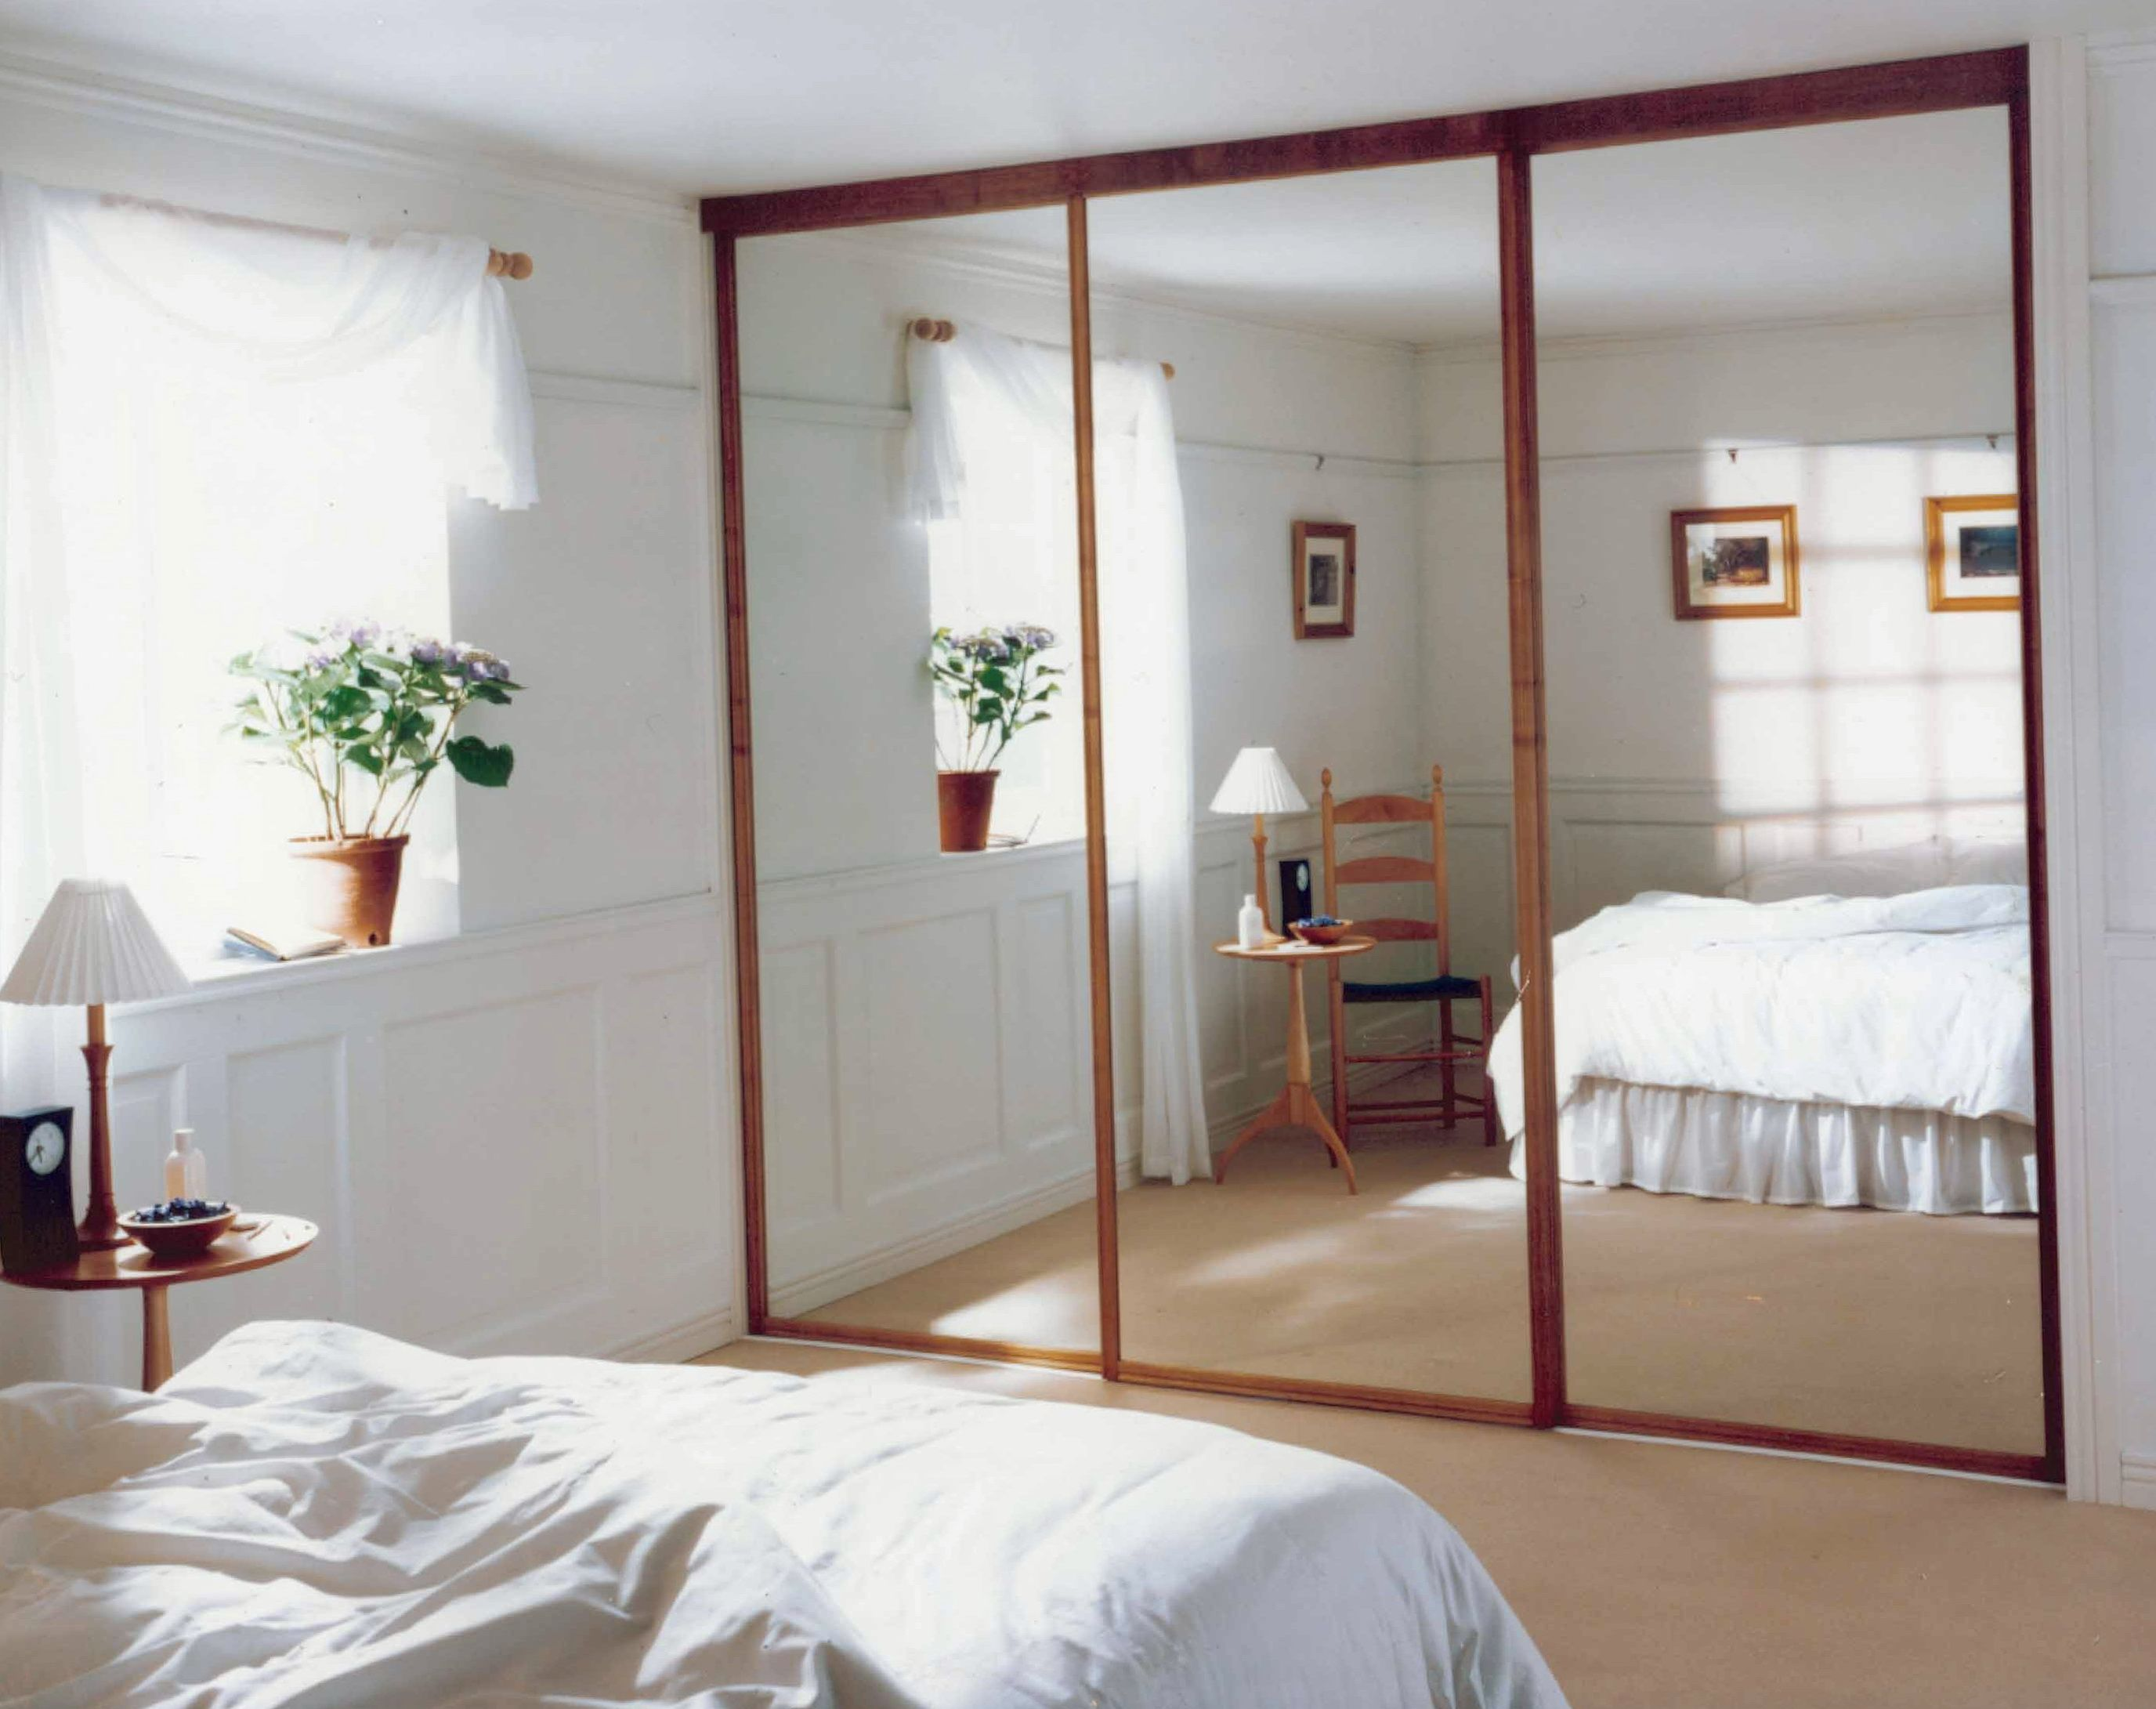 J Elegant Sliding Closet Doors With Glass Panels 27522181 Our